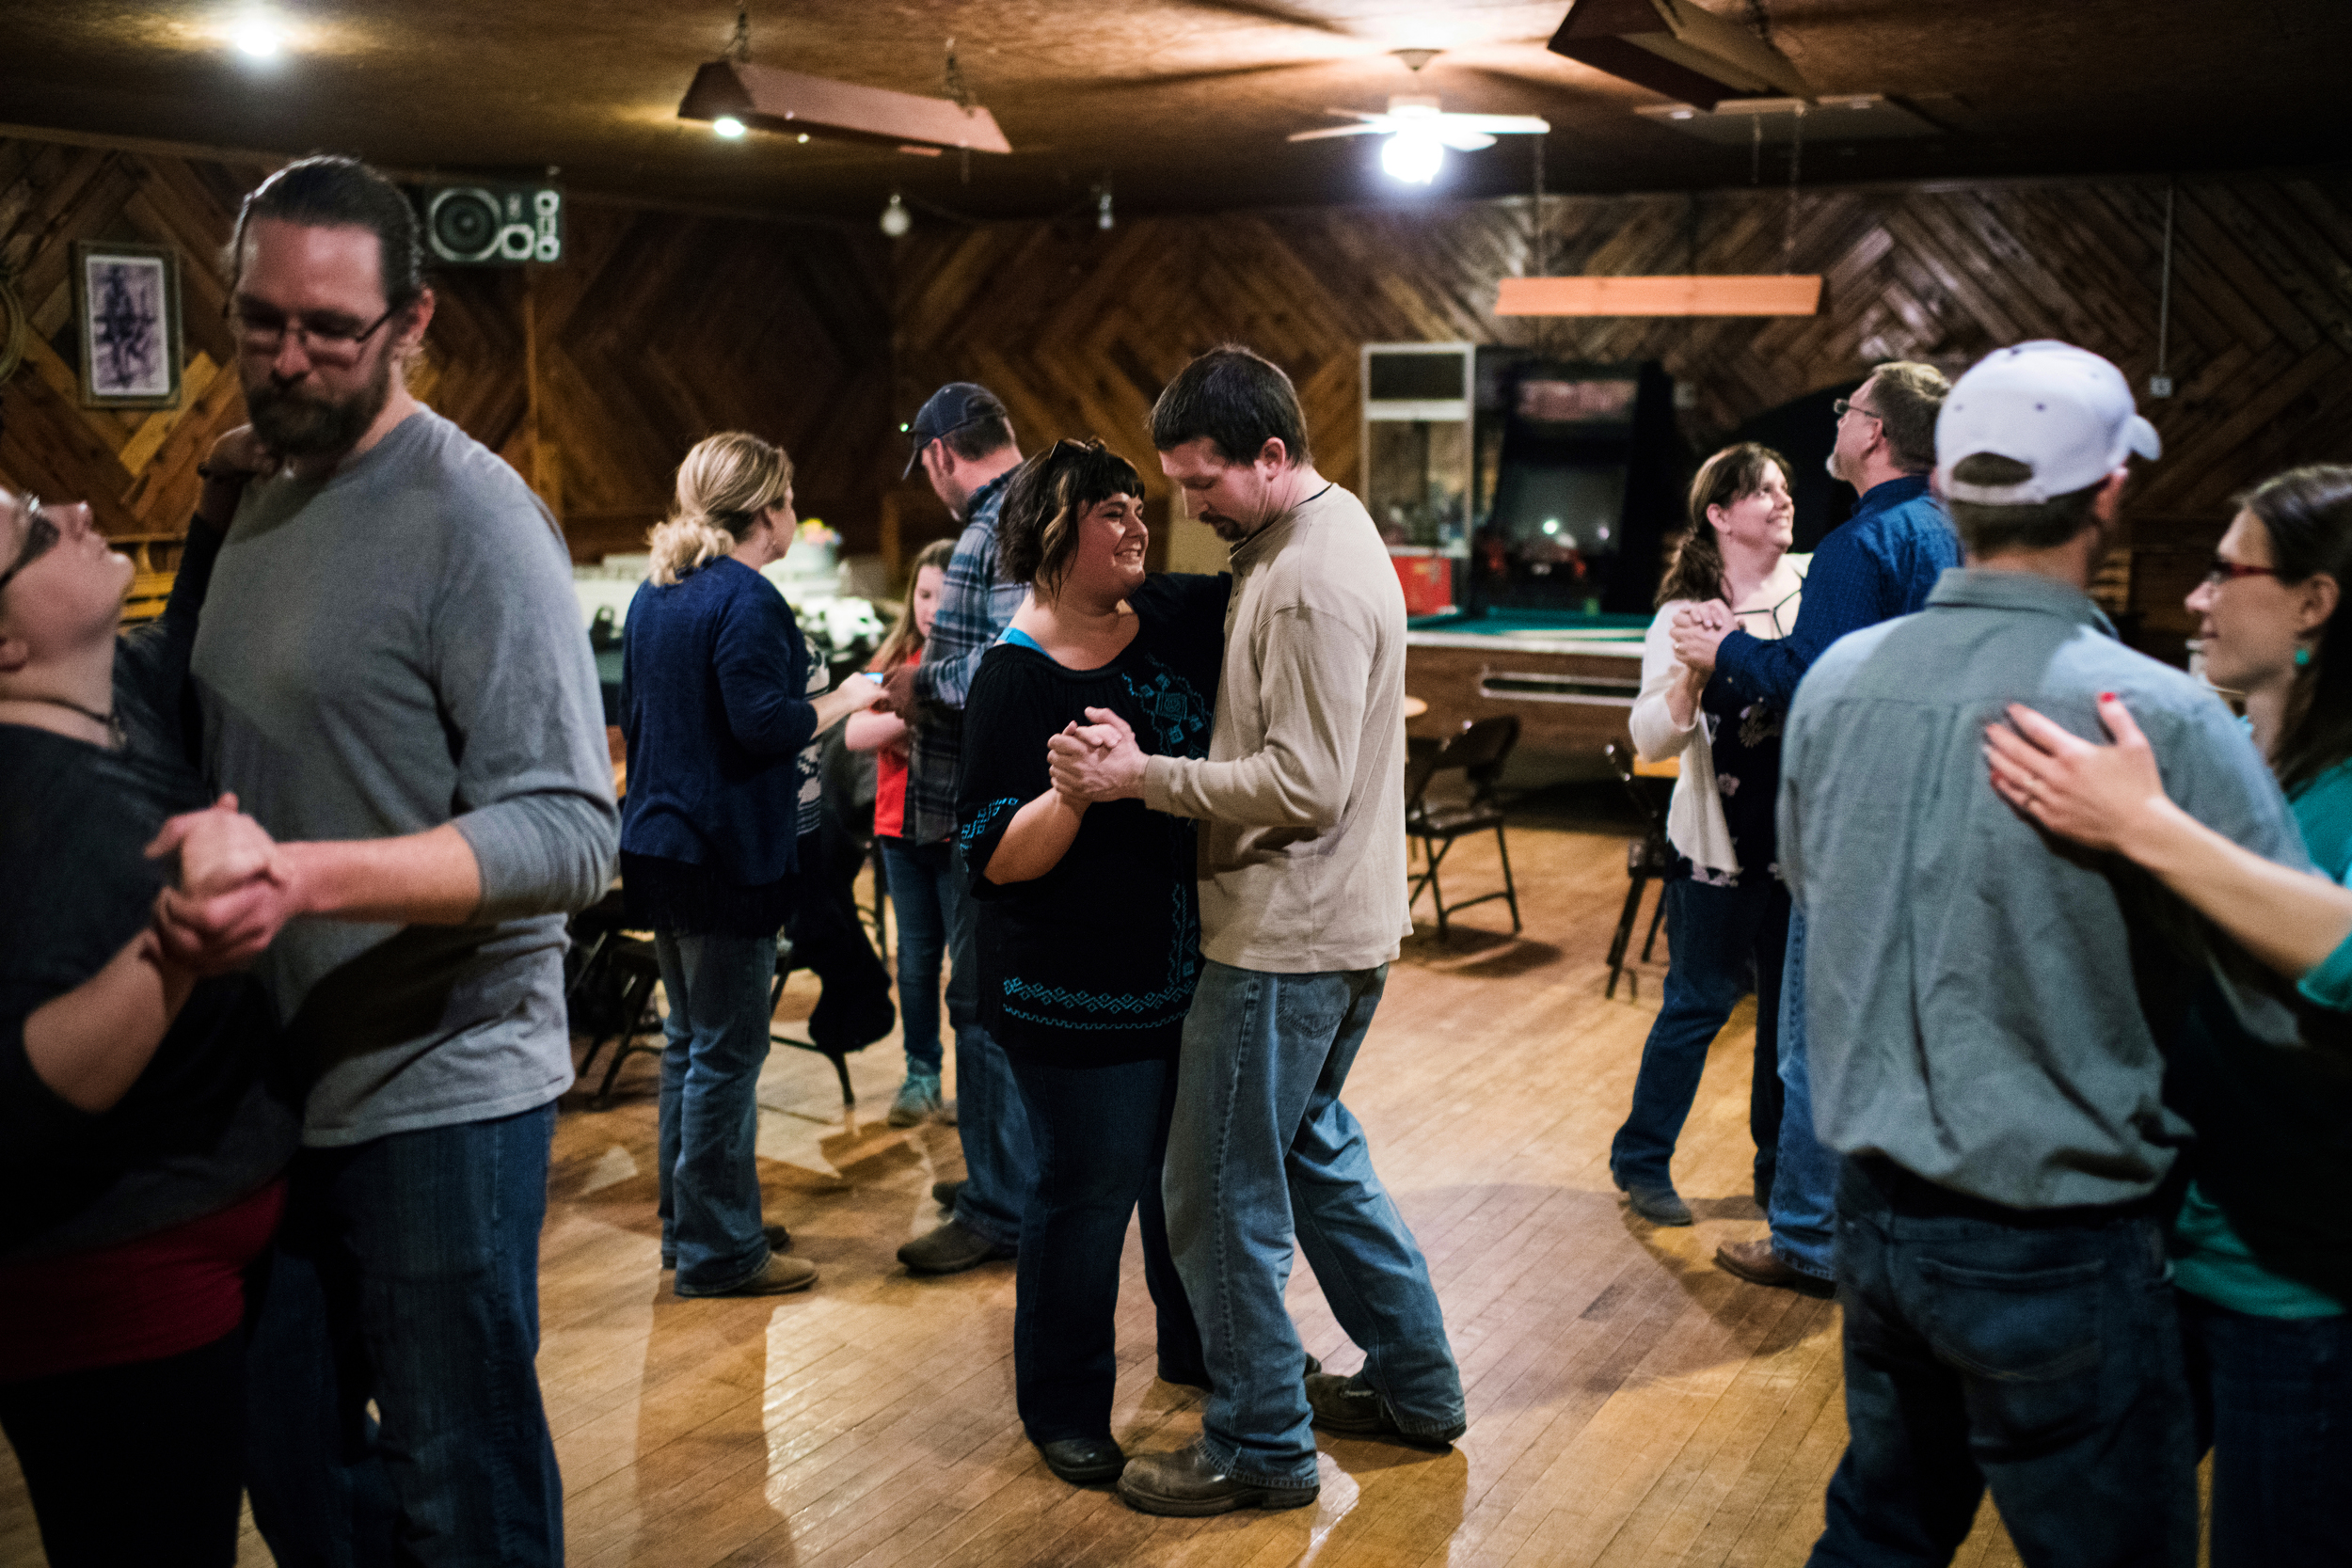 "45º31'48.9""N, 102º12'59.8""W. 123 miles from the nearest McDonald's.  Couples practice the two-step during dance lessons at Smoky's Bar and Grill in Meadow, SD on April 8, 2018. Smoky's is the main social hub for the community year-round, run by a couple, Andrea Block and Shiloh Lorius, left, who returned to the area and bought the business and revitalized it after years of slowly declining patronage and before that a 10-year closure due to an owner's arrest for drug trafficking."